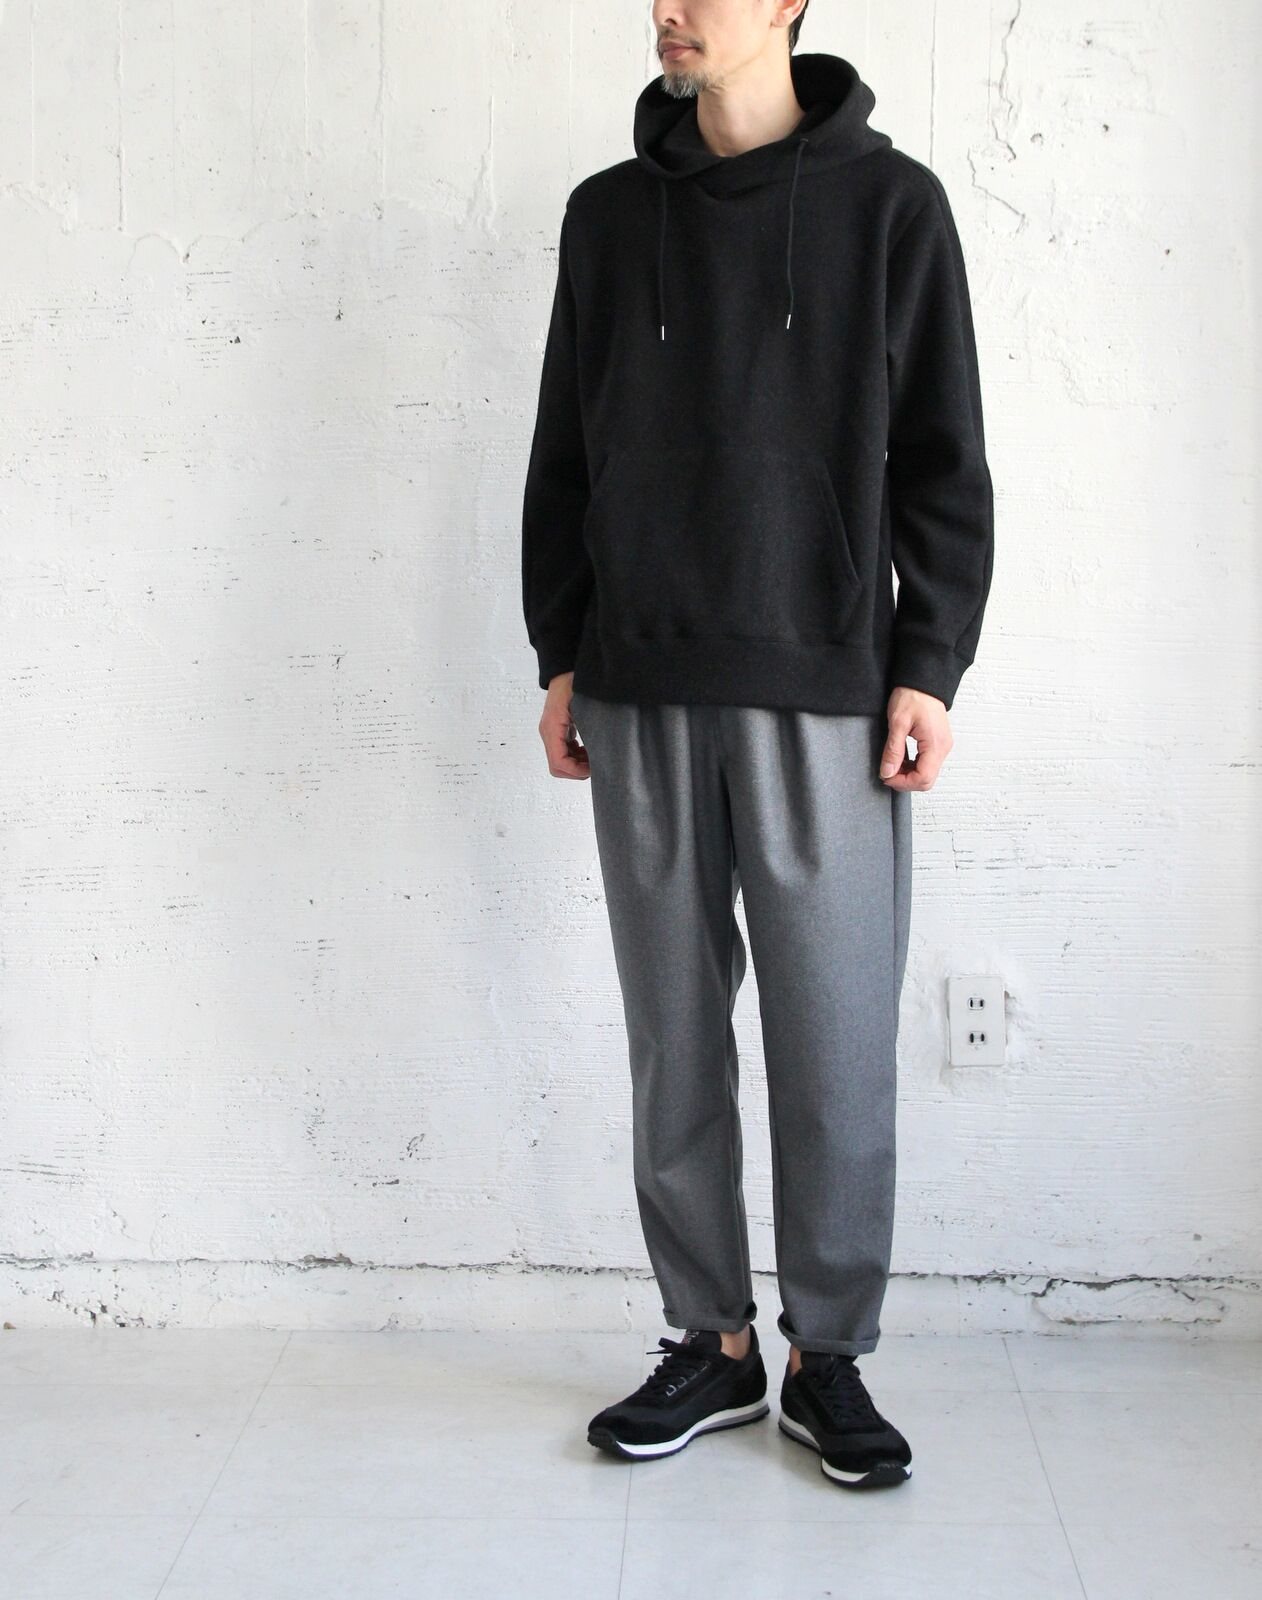 Wool Double Face Outer Parka_c0379477_11224273.jpeg